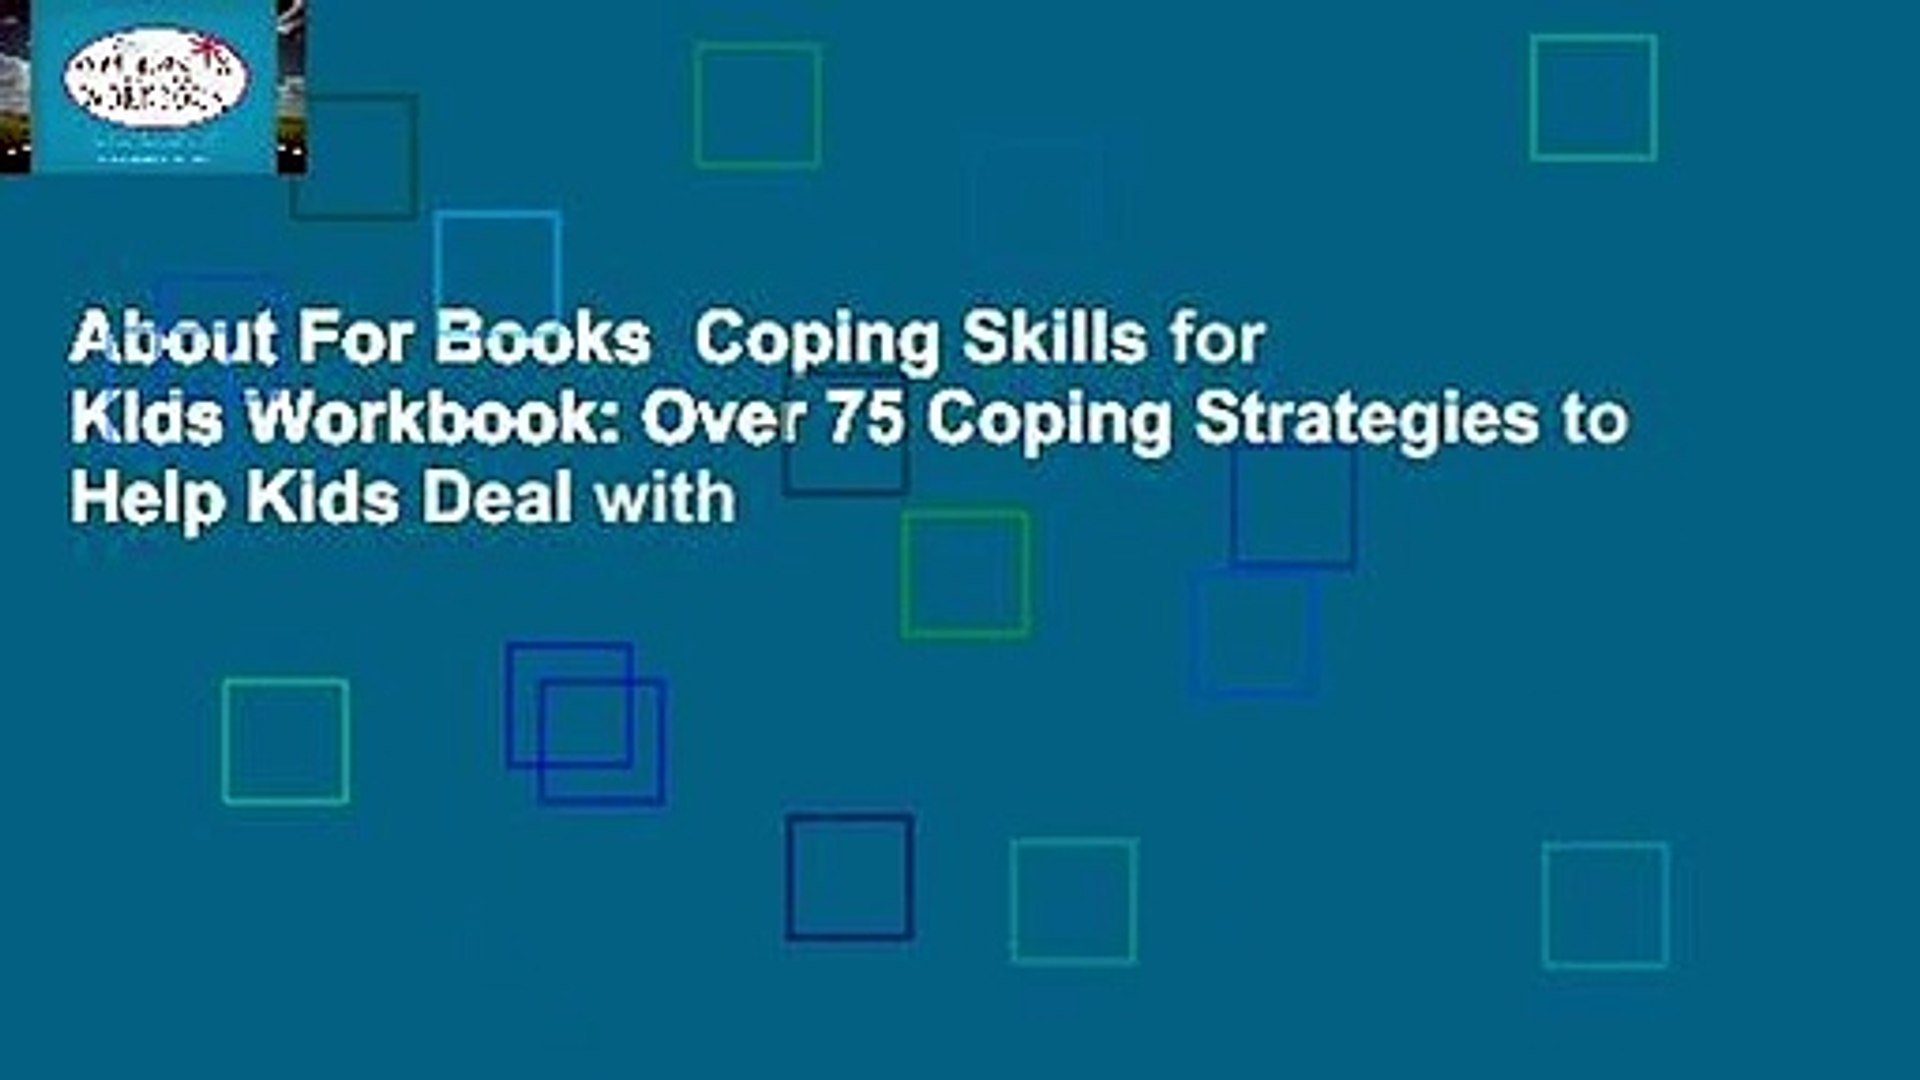 About For Books Coping Skills for Kids Workbook: Over 75 Coping Strategies  to Help Kids Deal with